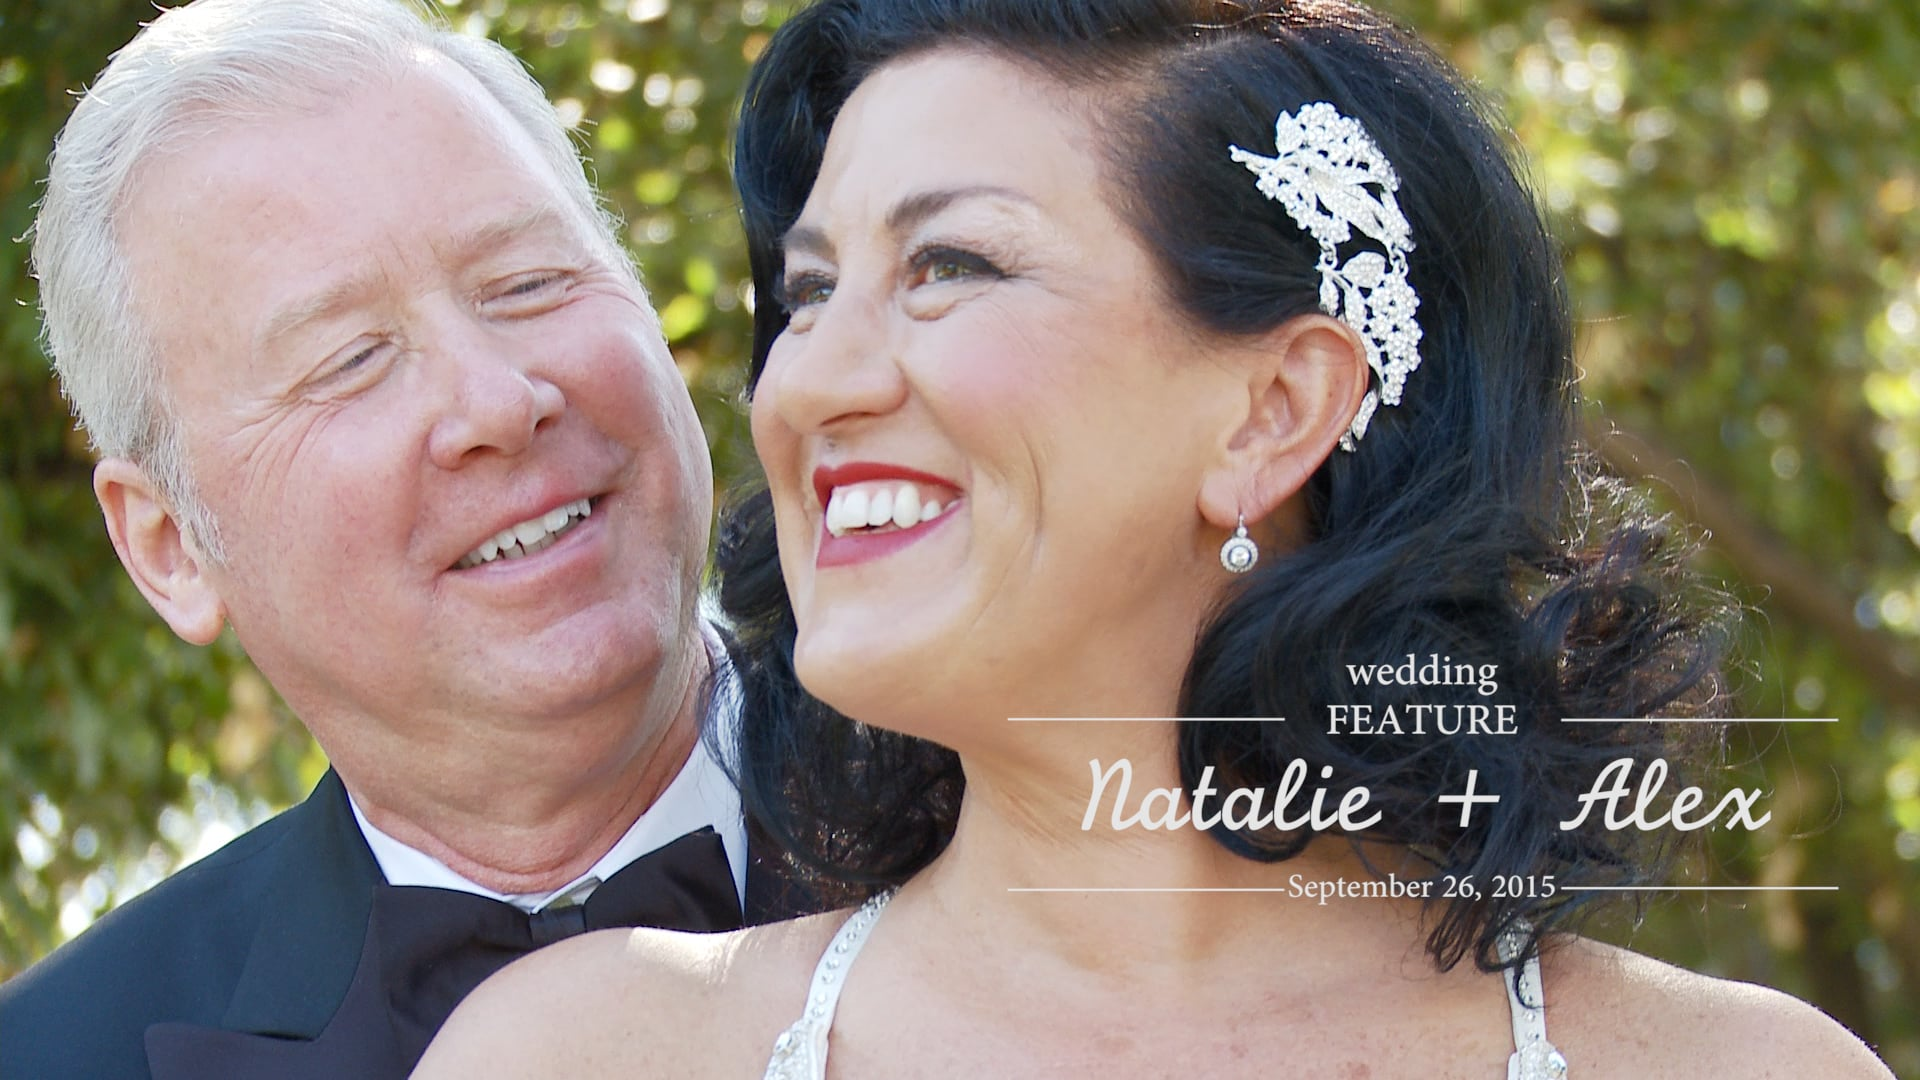 Natalie and Alex Wedding Feature